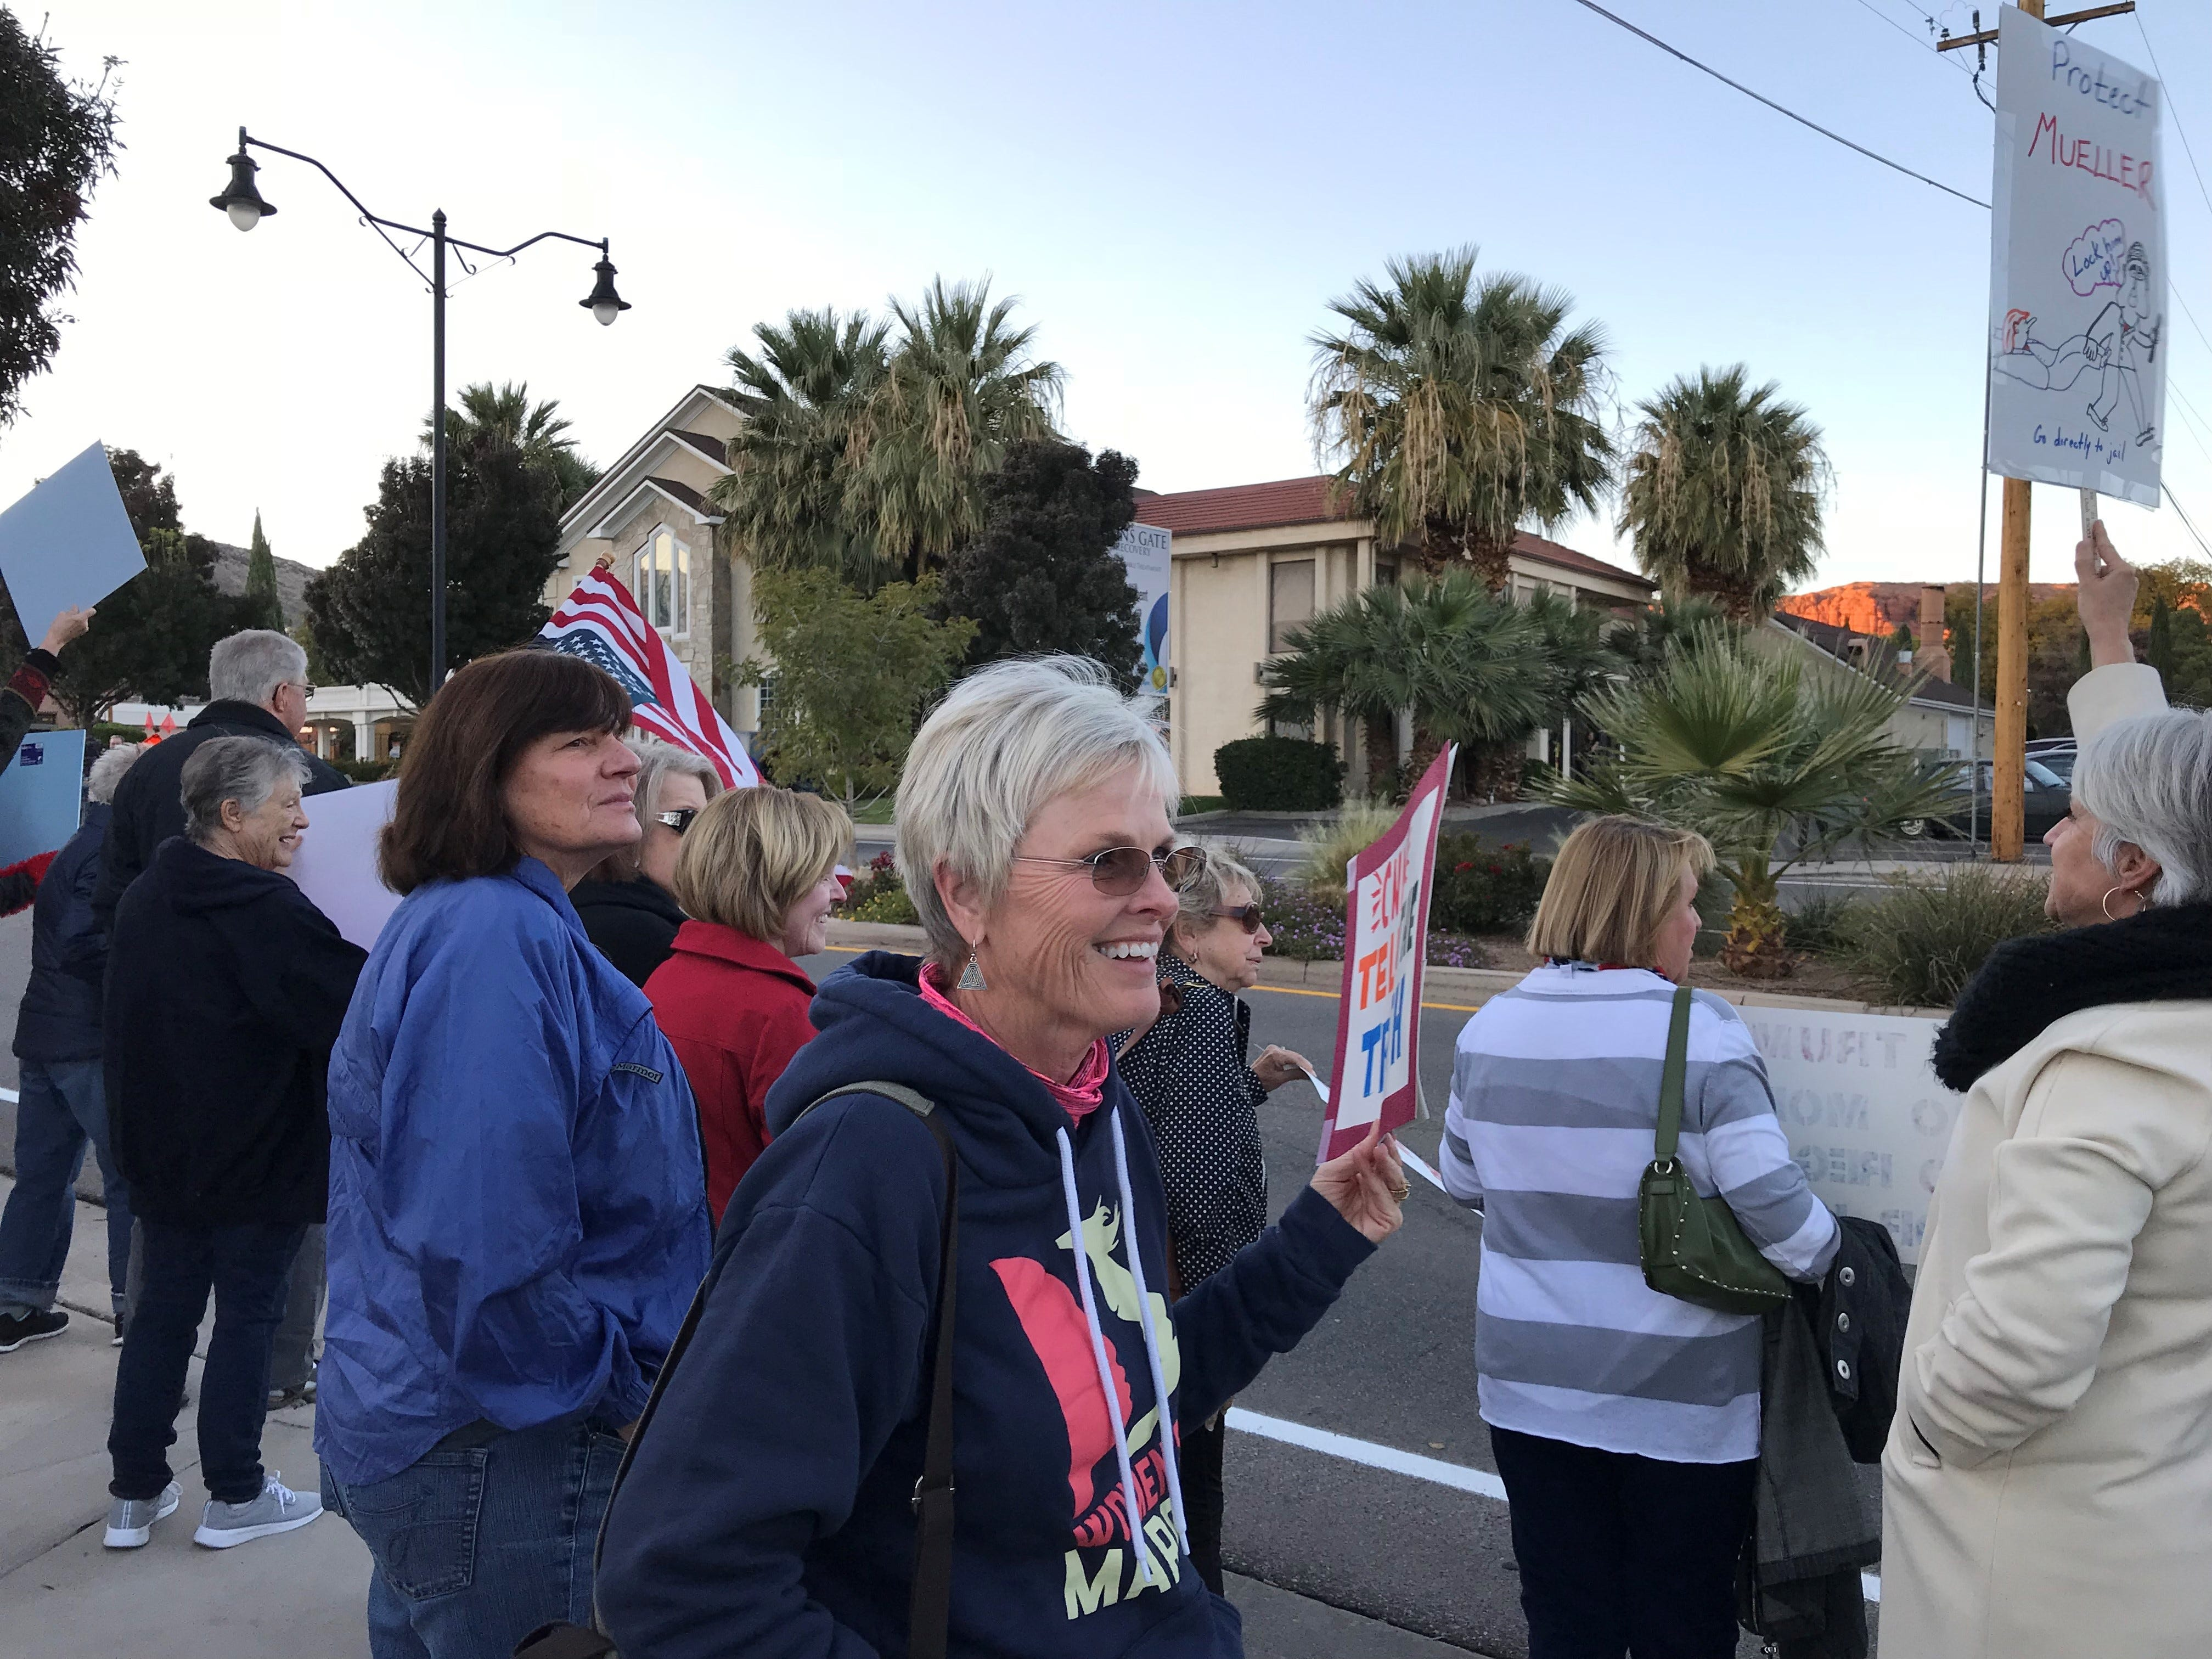 Activists gathered Thursday in front of Rep. Chris Stewart's St. George offices in defense of an ongoing special investigation into the 2016 elections. The event was a local piece of a larger national campaign organized in response to President Donald Trump's dismissal of Attorney General Jeff Sessions.